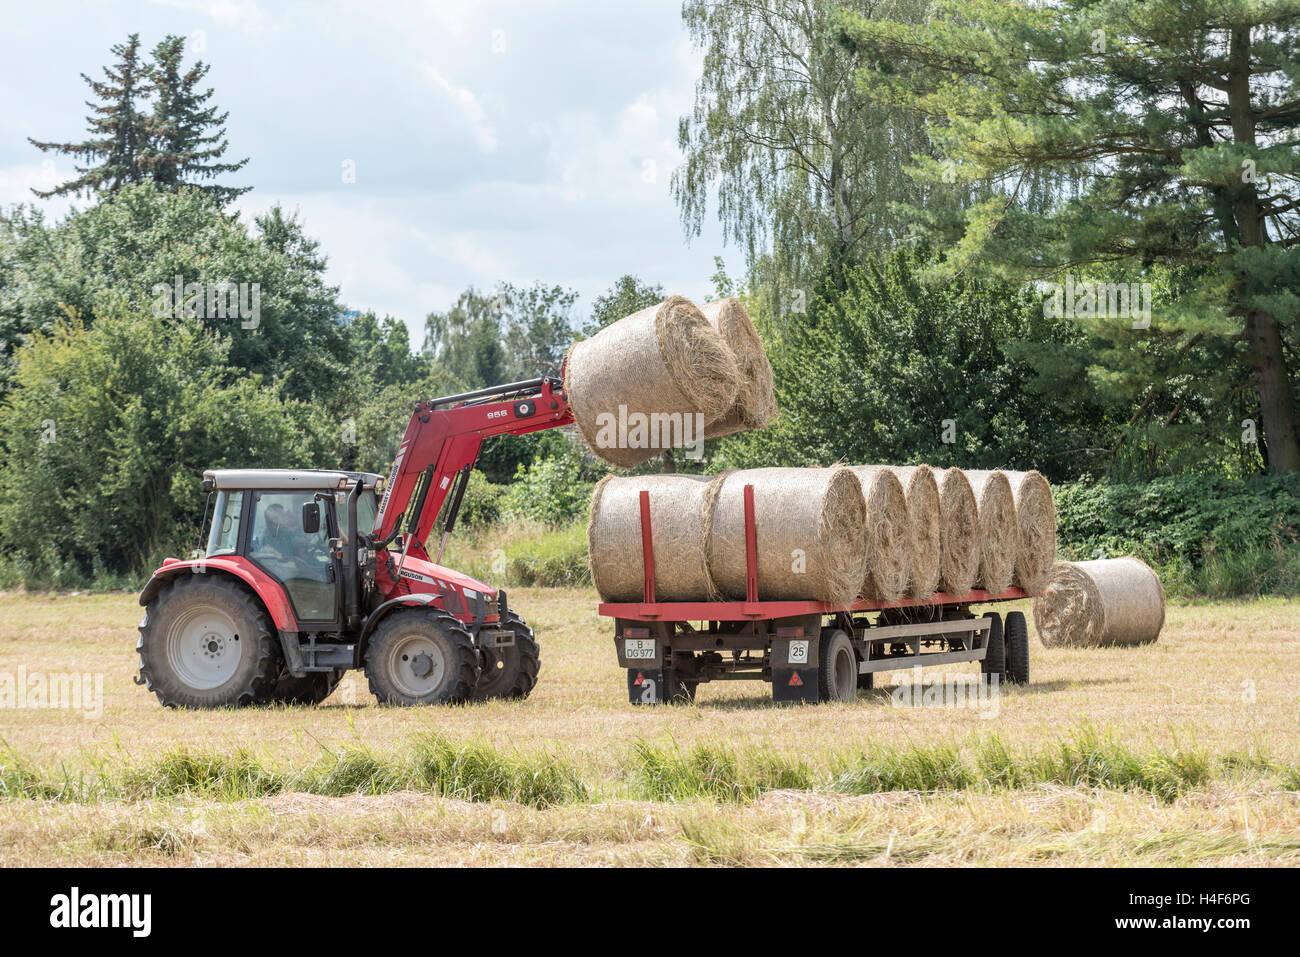 Tractor loading bails of hay onto a trailer in a field - Stock Image